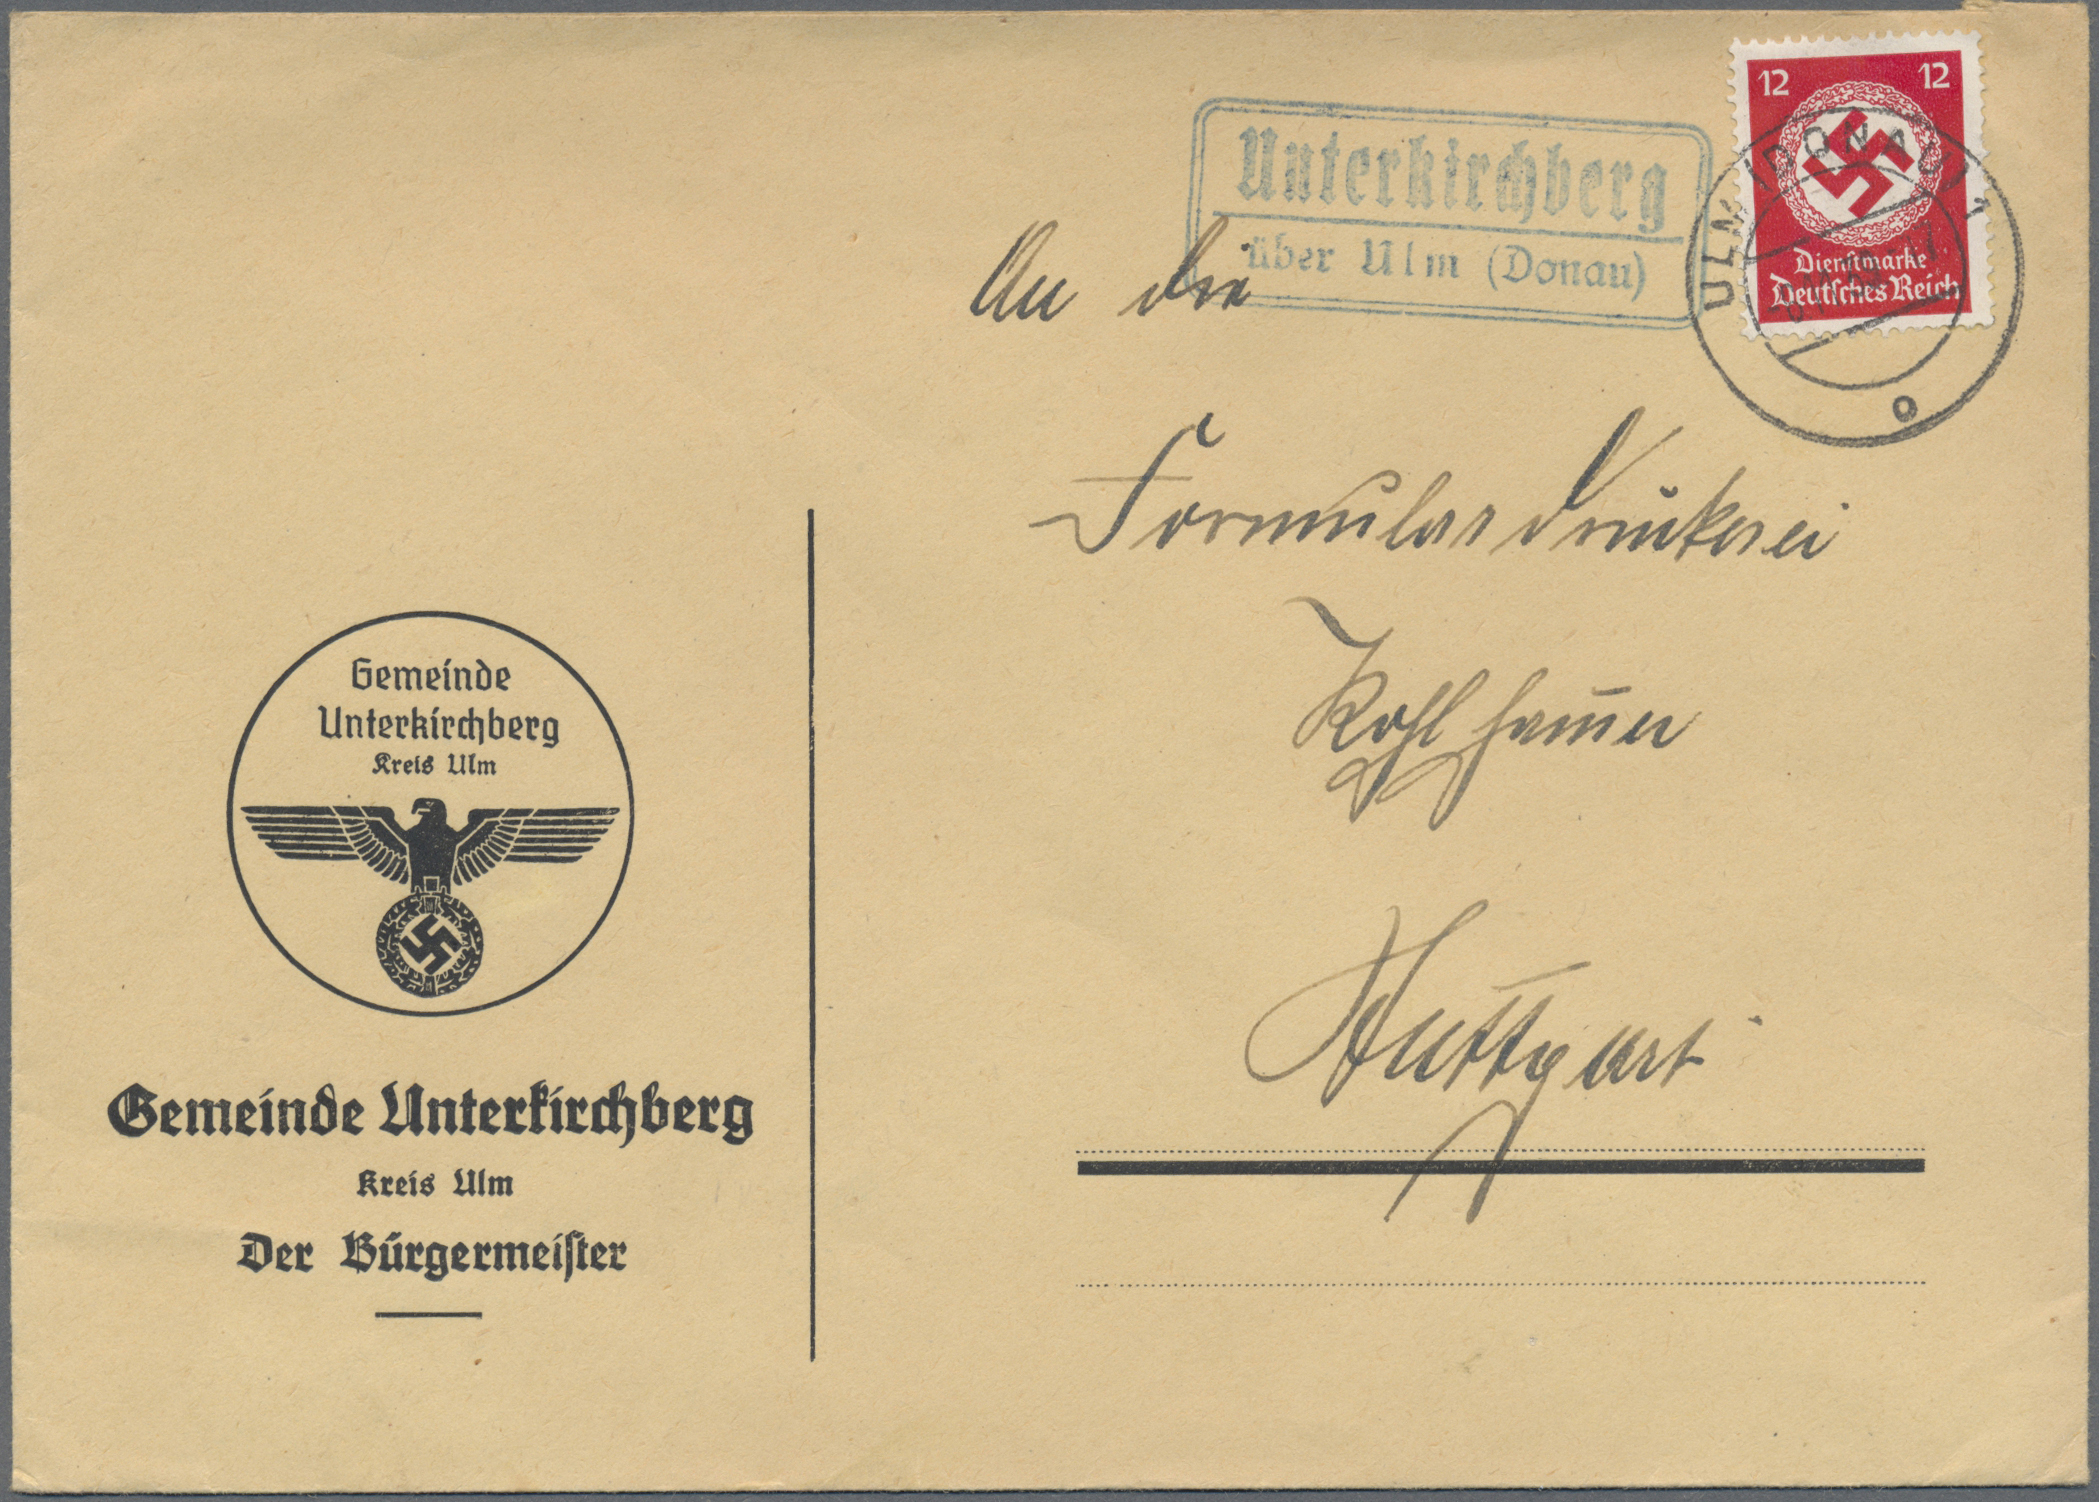 Lot 36582 - württemberg - stempel  -  Auktionshaus Christoph Gärtner GmbH & Co. KG Collections Germany,  Collections Supplement, Surprise boxes #39 Day 7